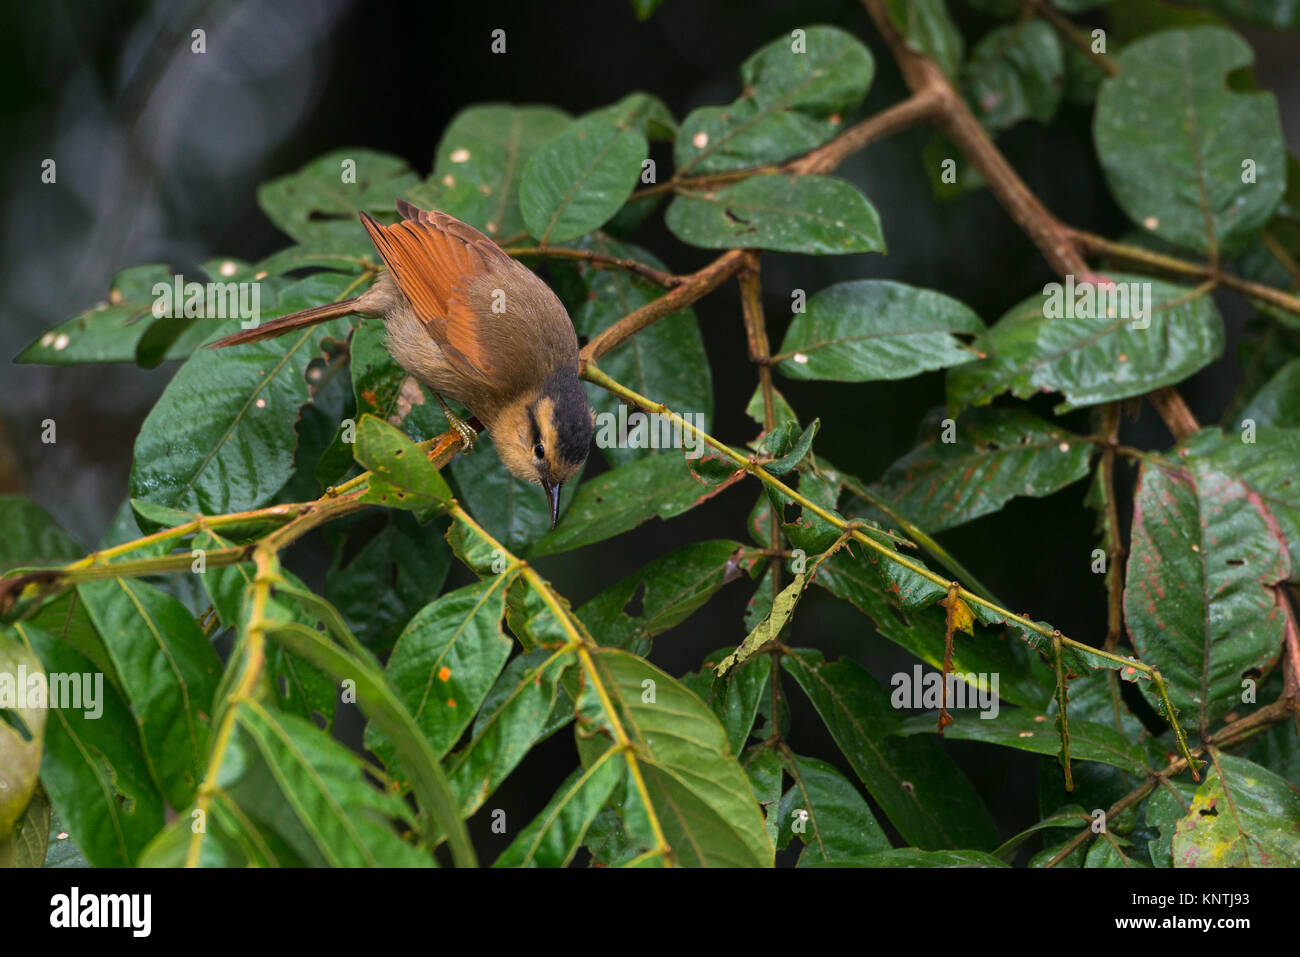 A Buff-fronted Foliage-Gleaner searching for insects among the foliage in the Atlantic Rainforest of SE Brazil - Stock Image